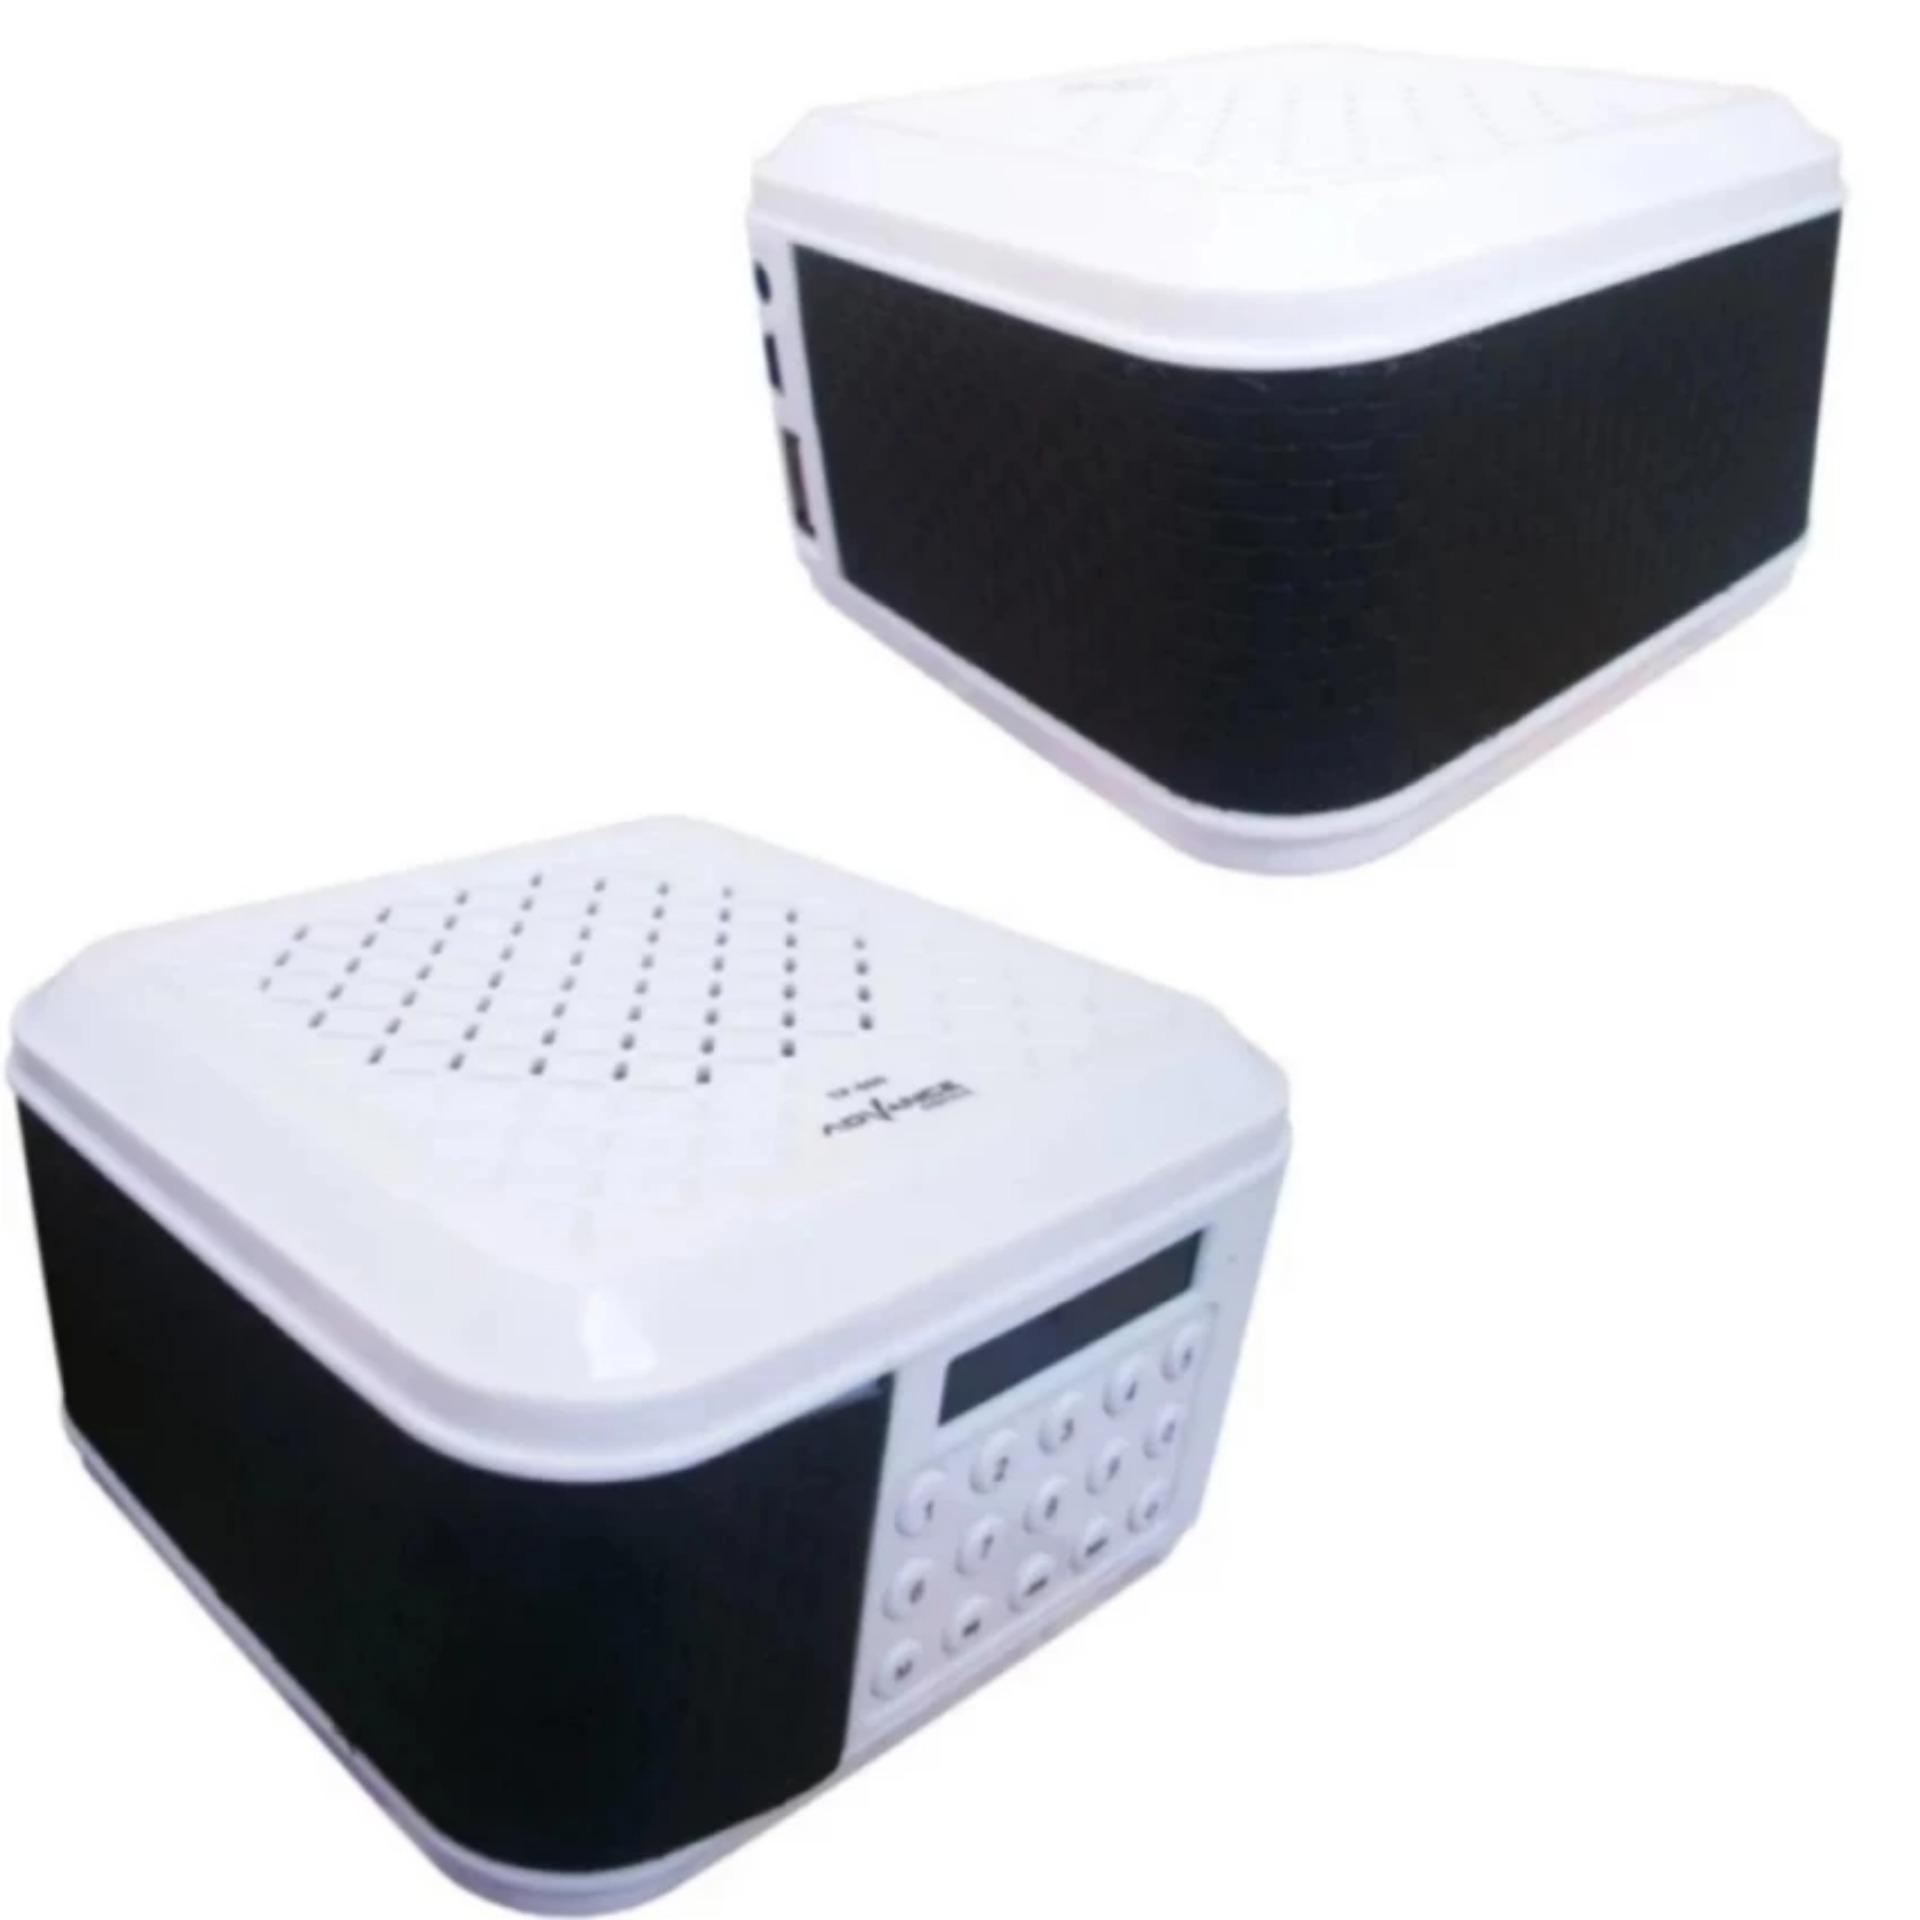 Speaker Portable Xtra Power Sound Advance Tp 600 Terbaru